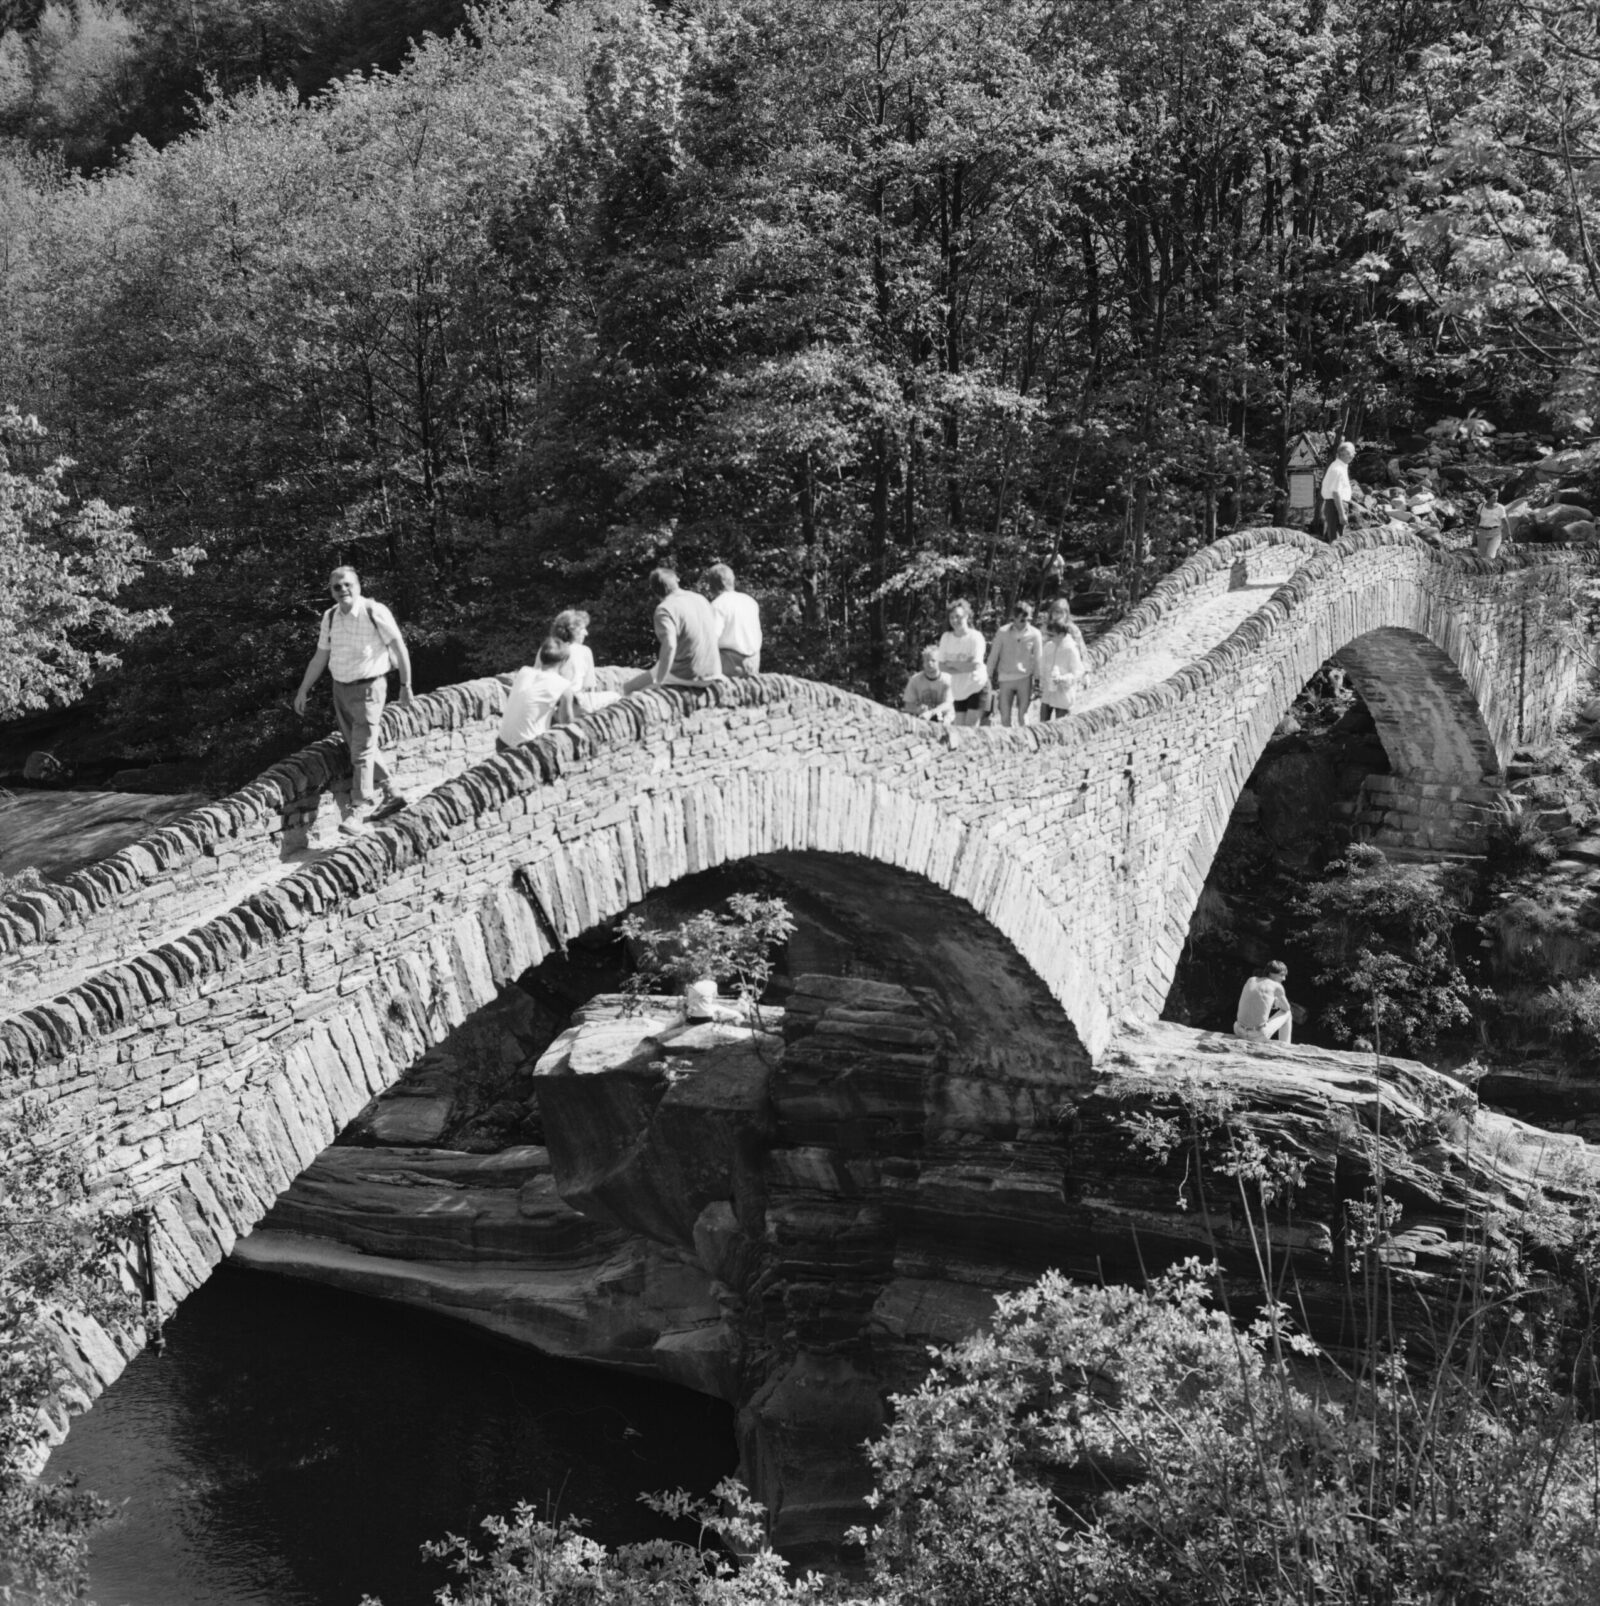 The beautifully curved Lavertezzo Bridge (Ponte dei Salti) dates back to the 17th century and is made of natural stone. It was partially destroyed in 1868 and rebuilt in 1960.